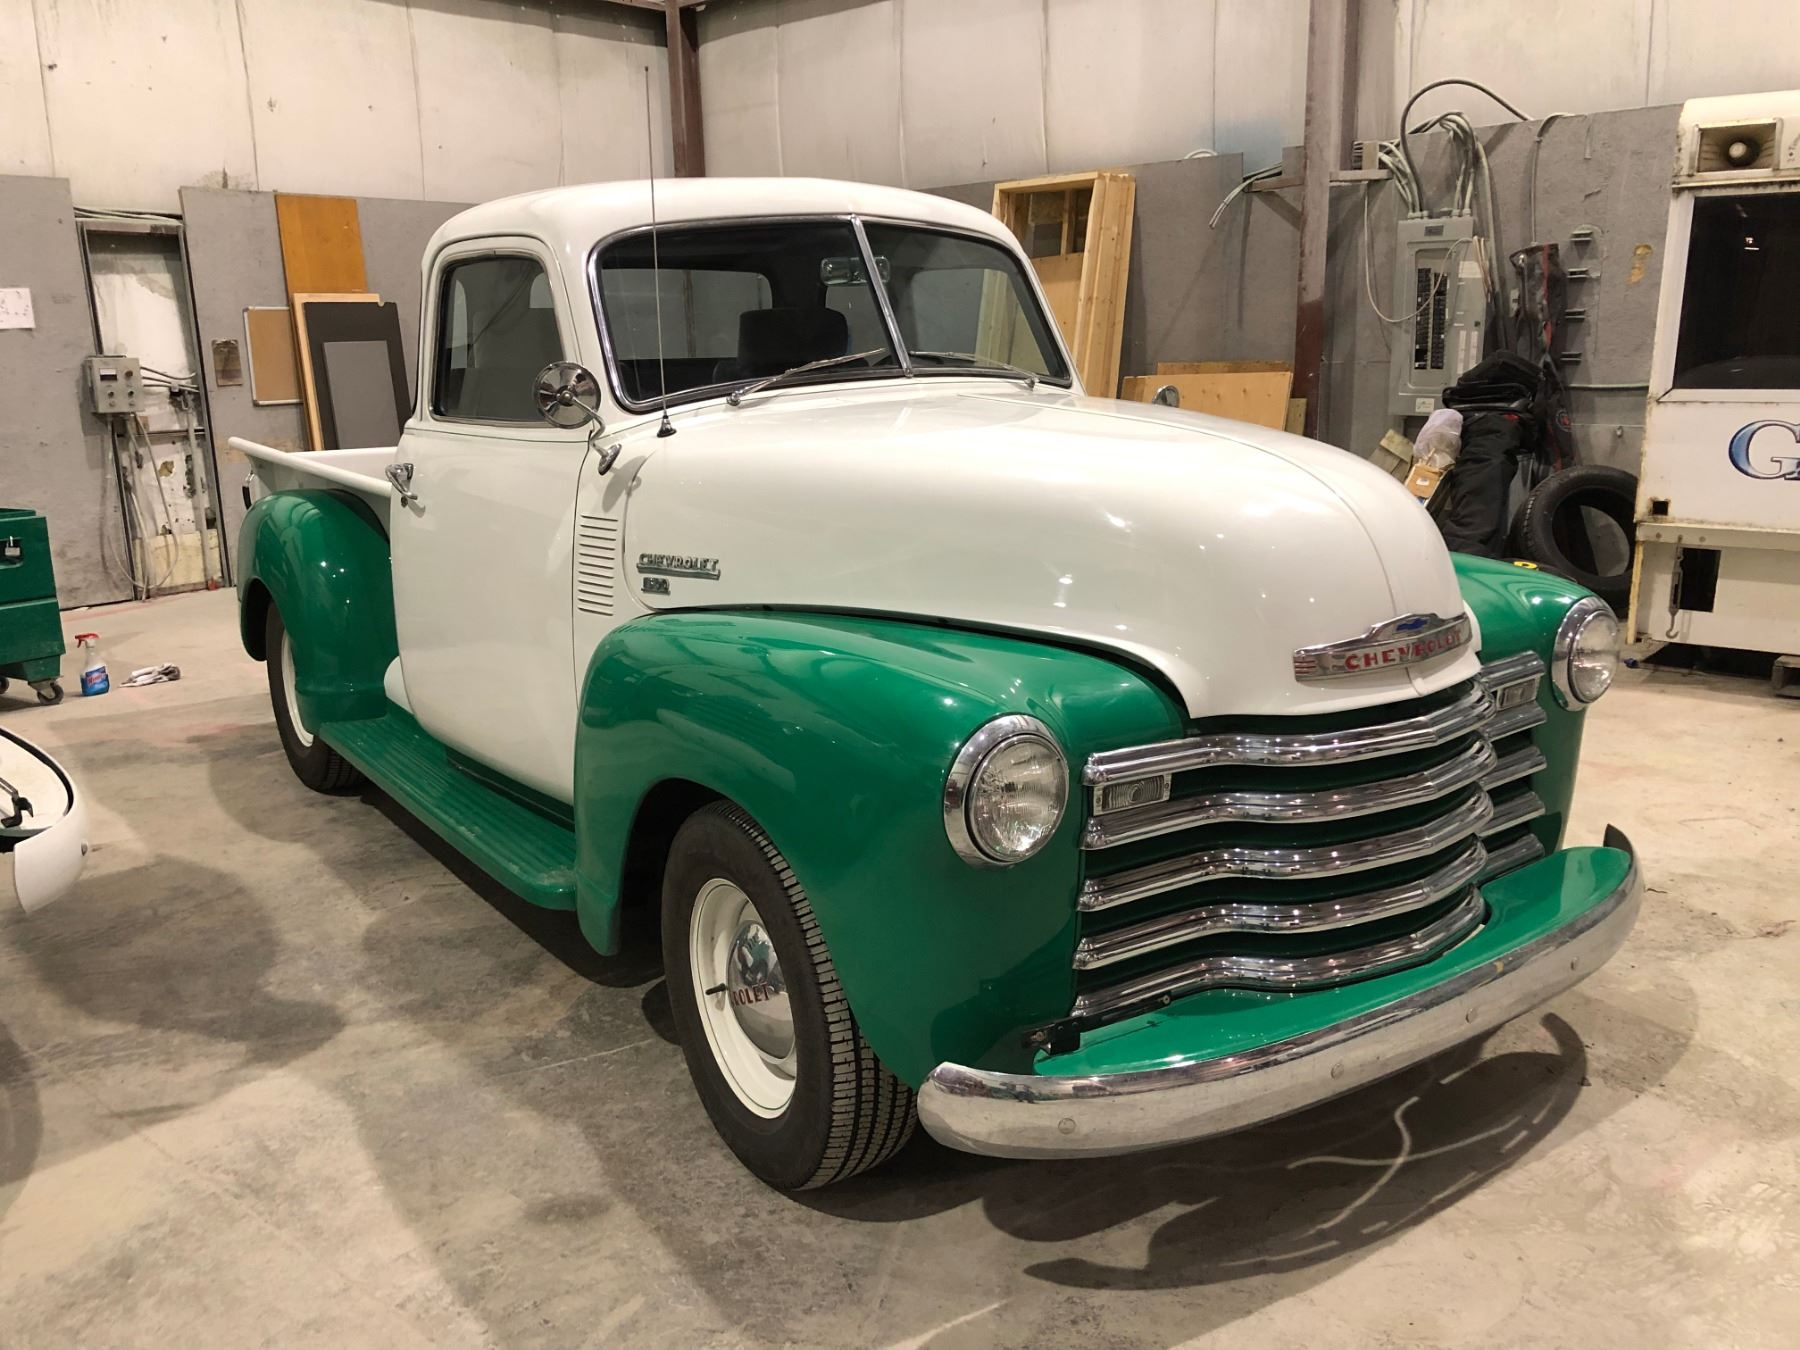 1952 Chevrolet 1300 Half ton truck, fully customized, frame off